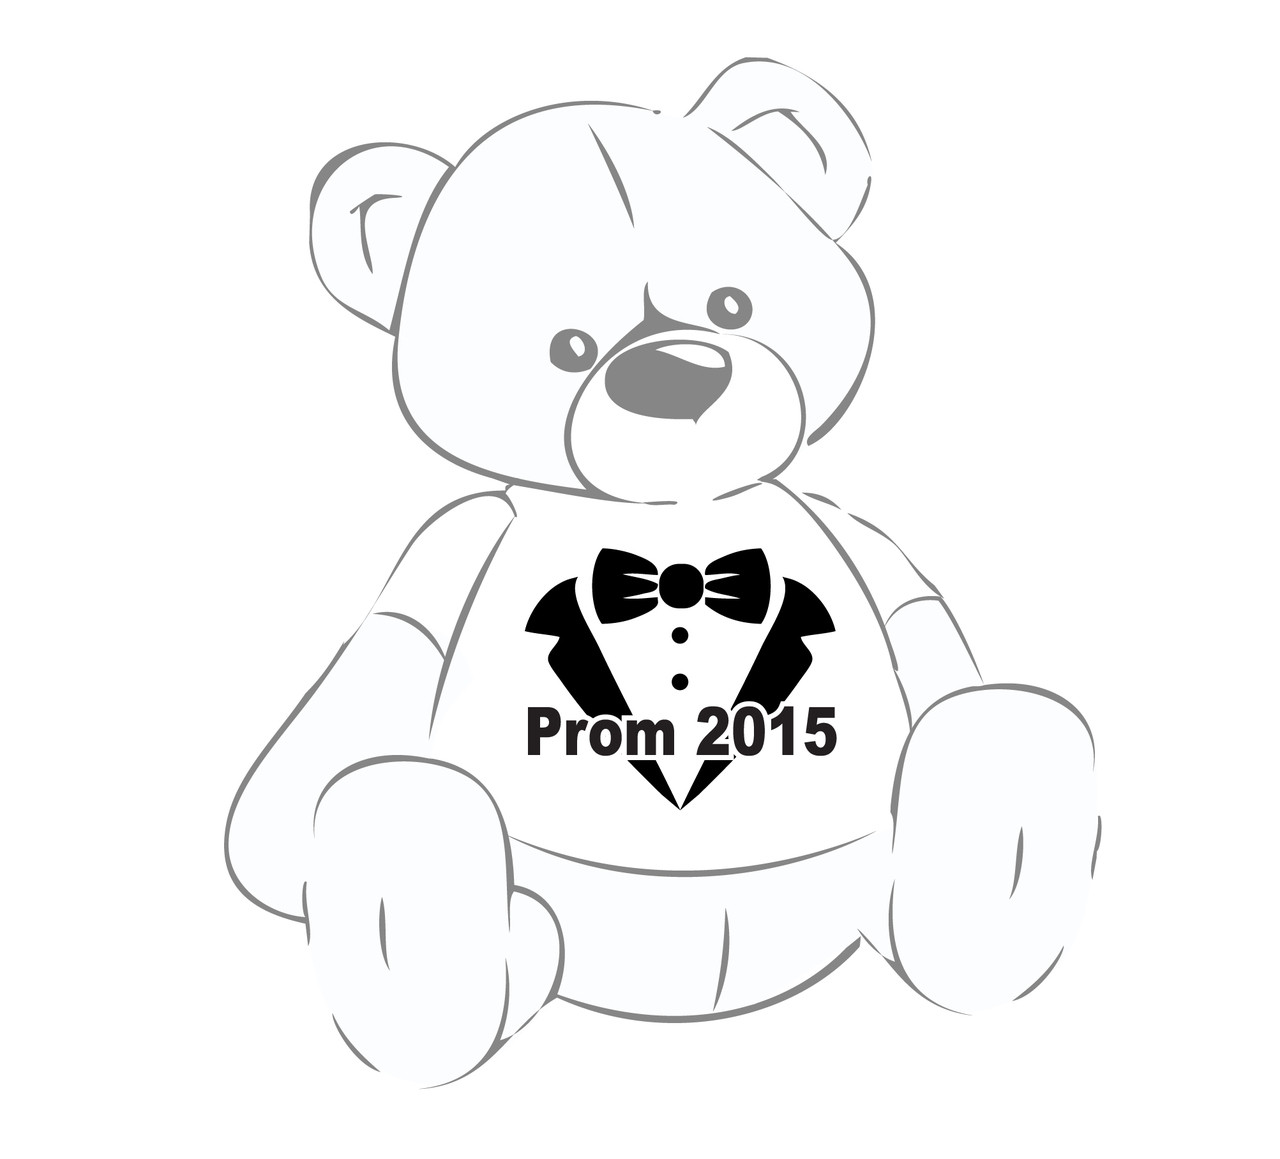 Prom 2015 shirt for any Giant Teddy Bear